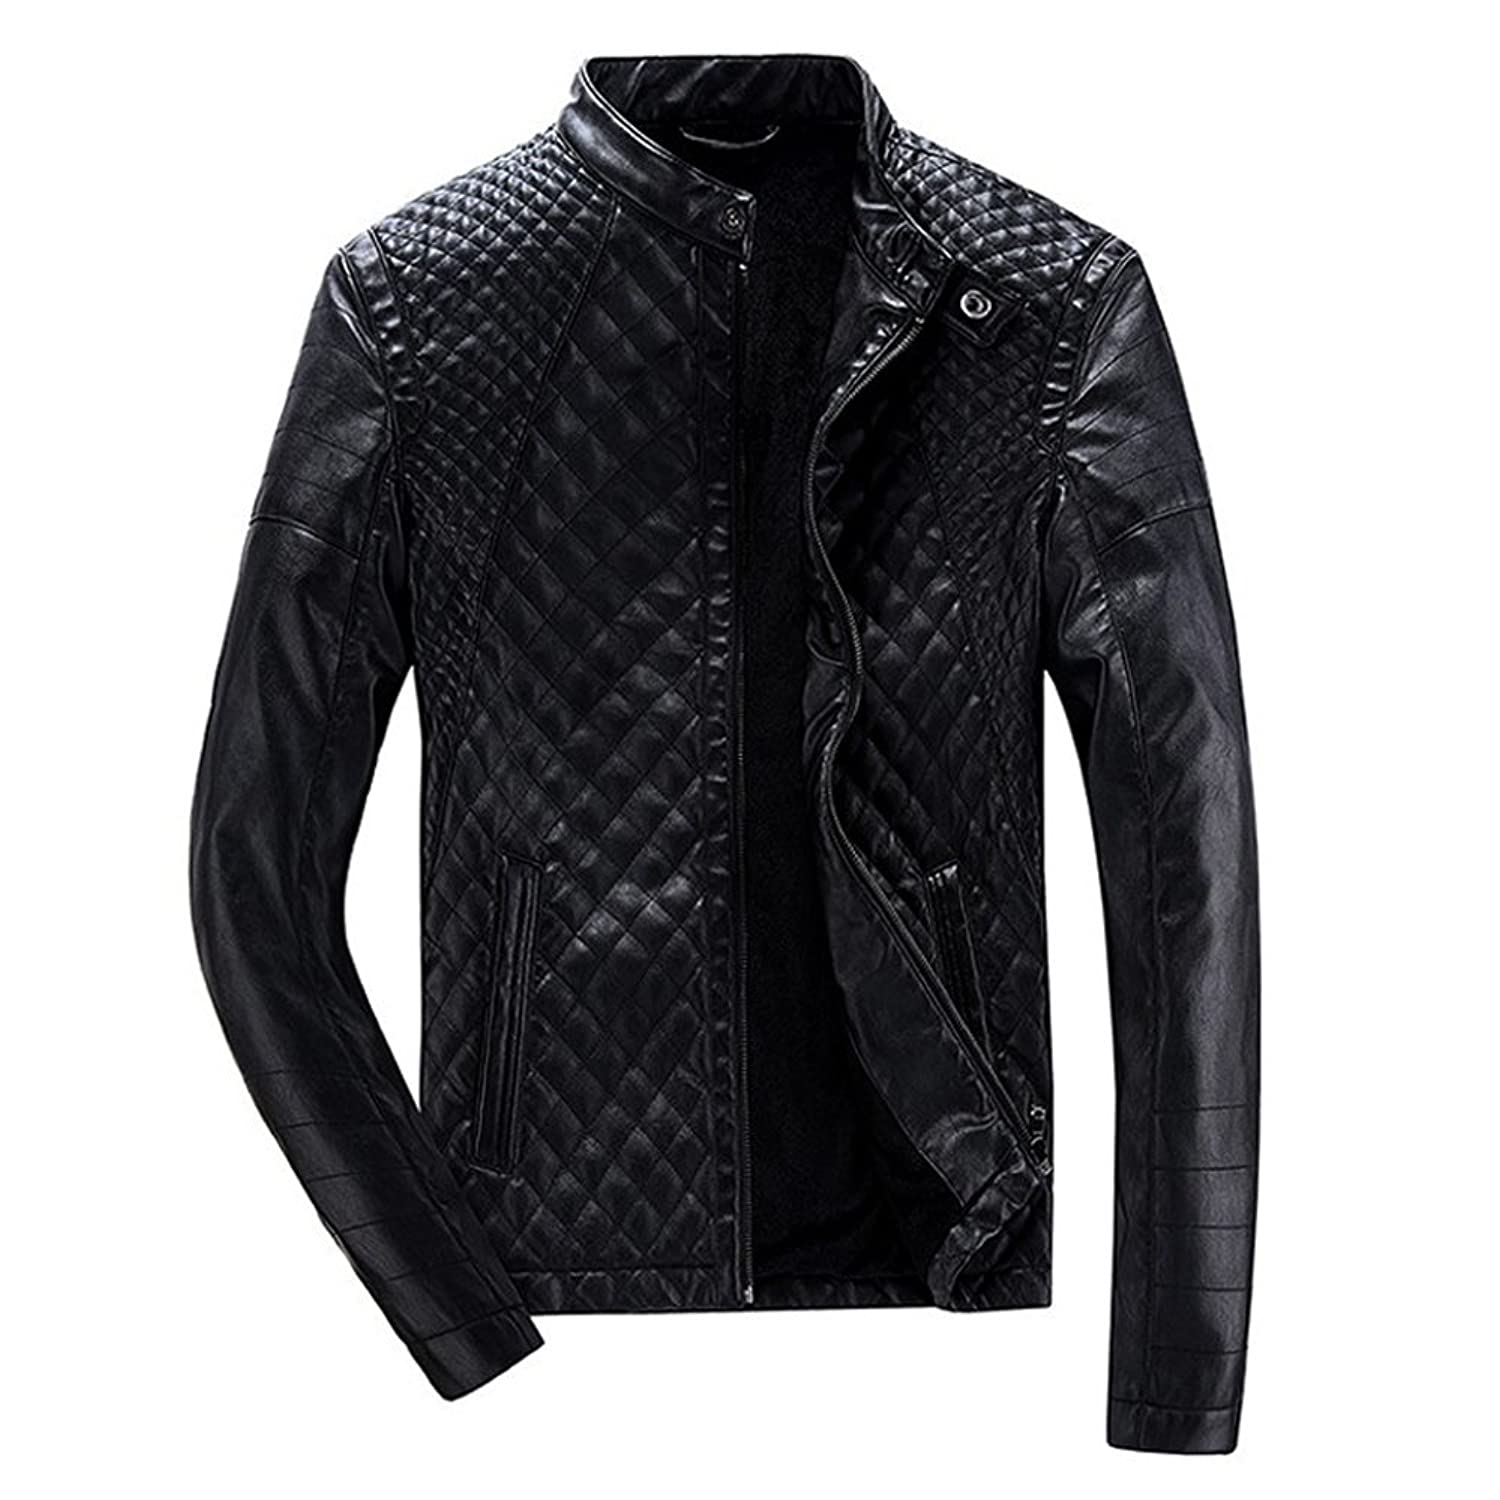 qqer? Jacket Similar Leather Coat For Winter Man and Woman EURO SIZE